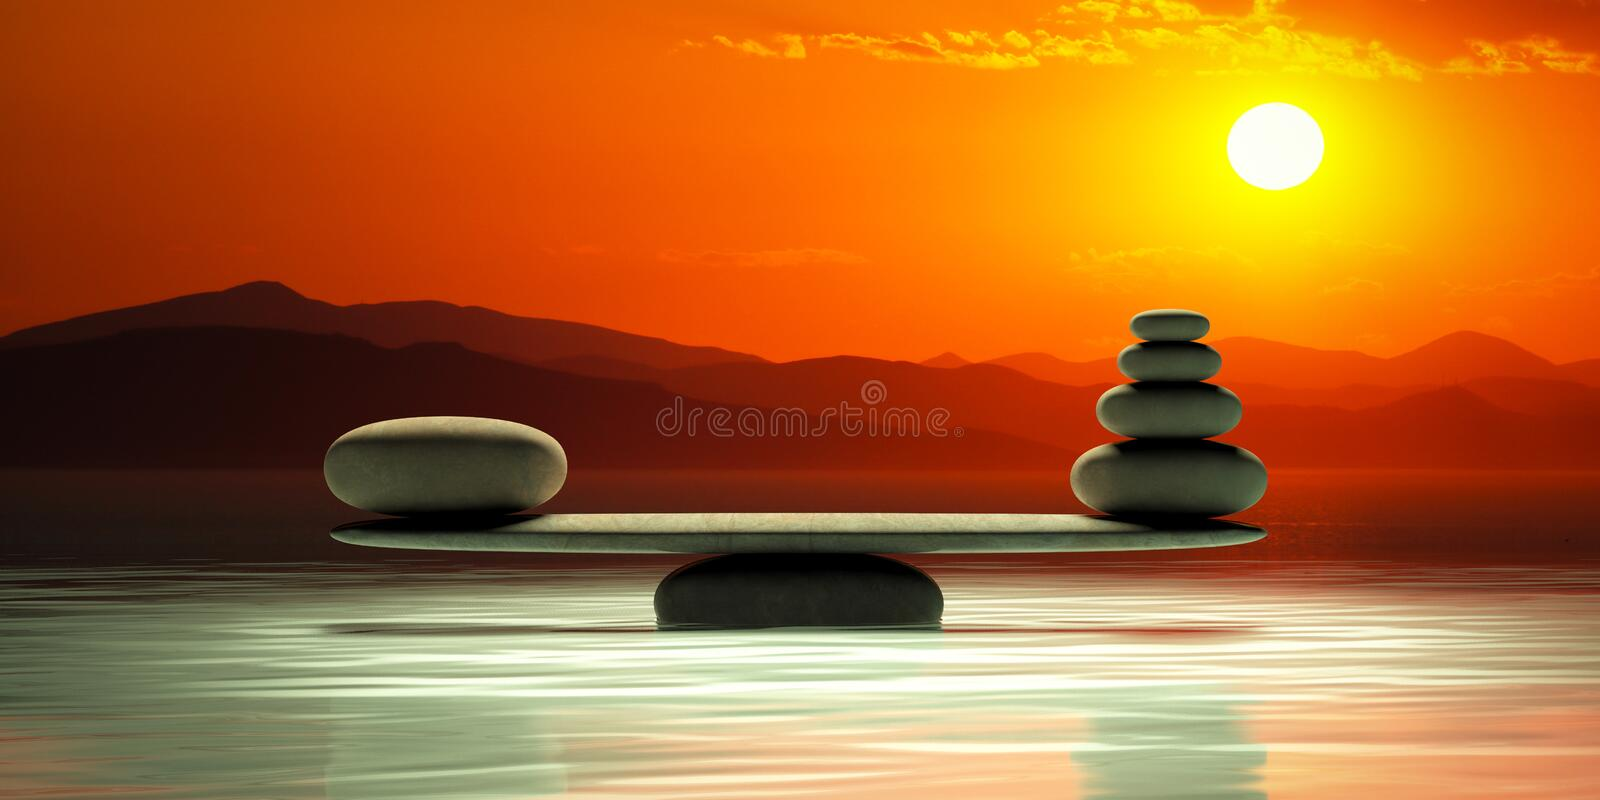 Zen stones scales on sunset background. 3d illustration vector illustration